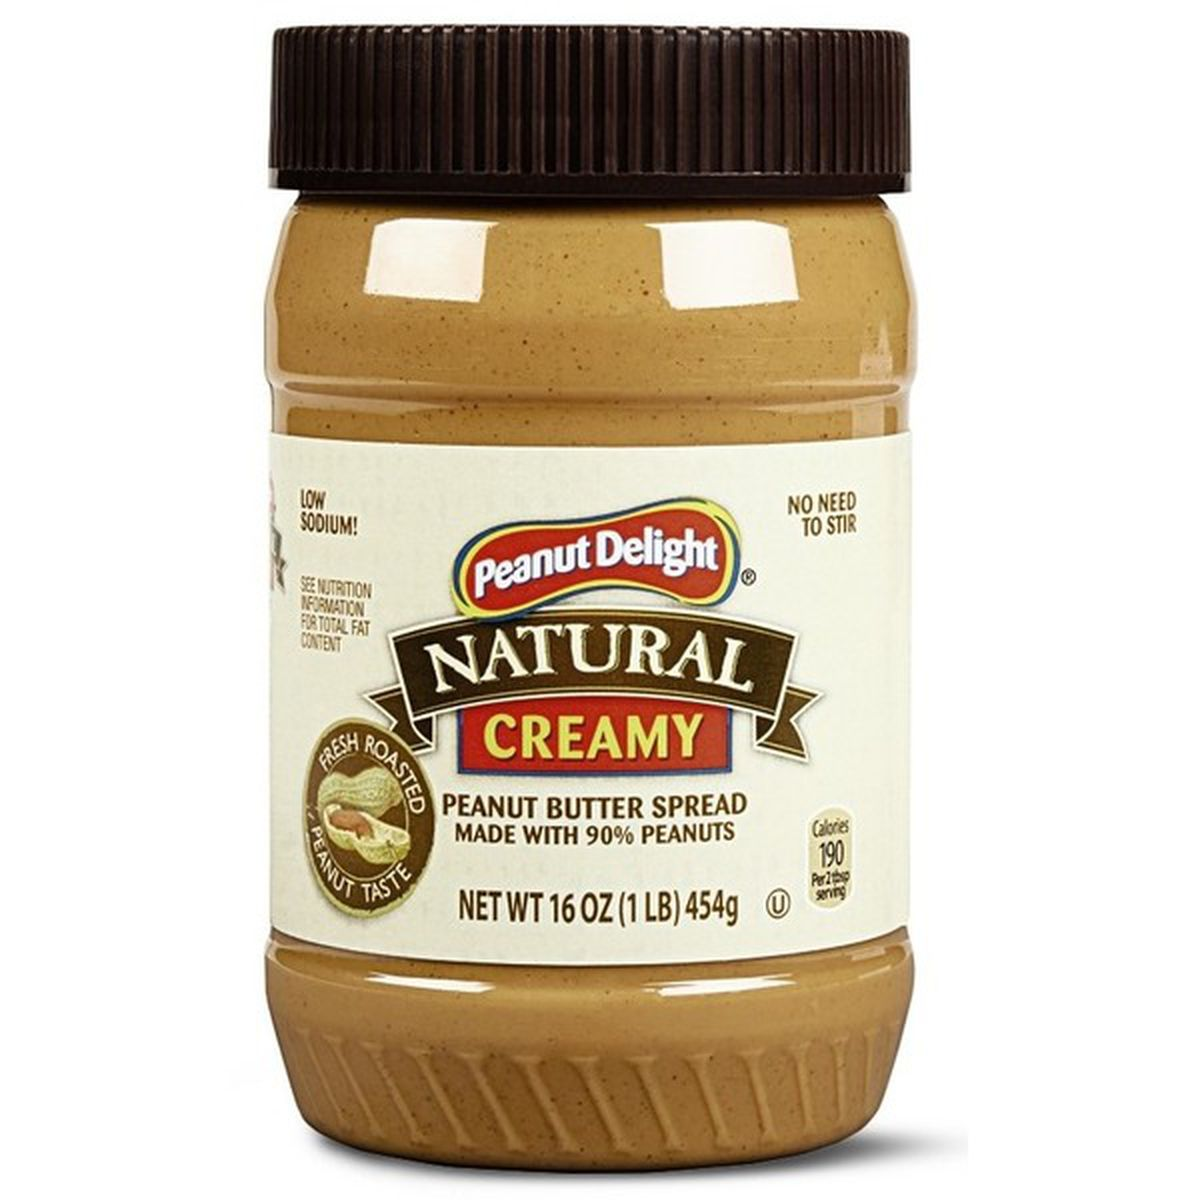 Natural Creamy Peanut Butter